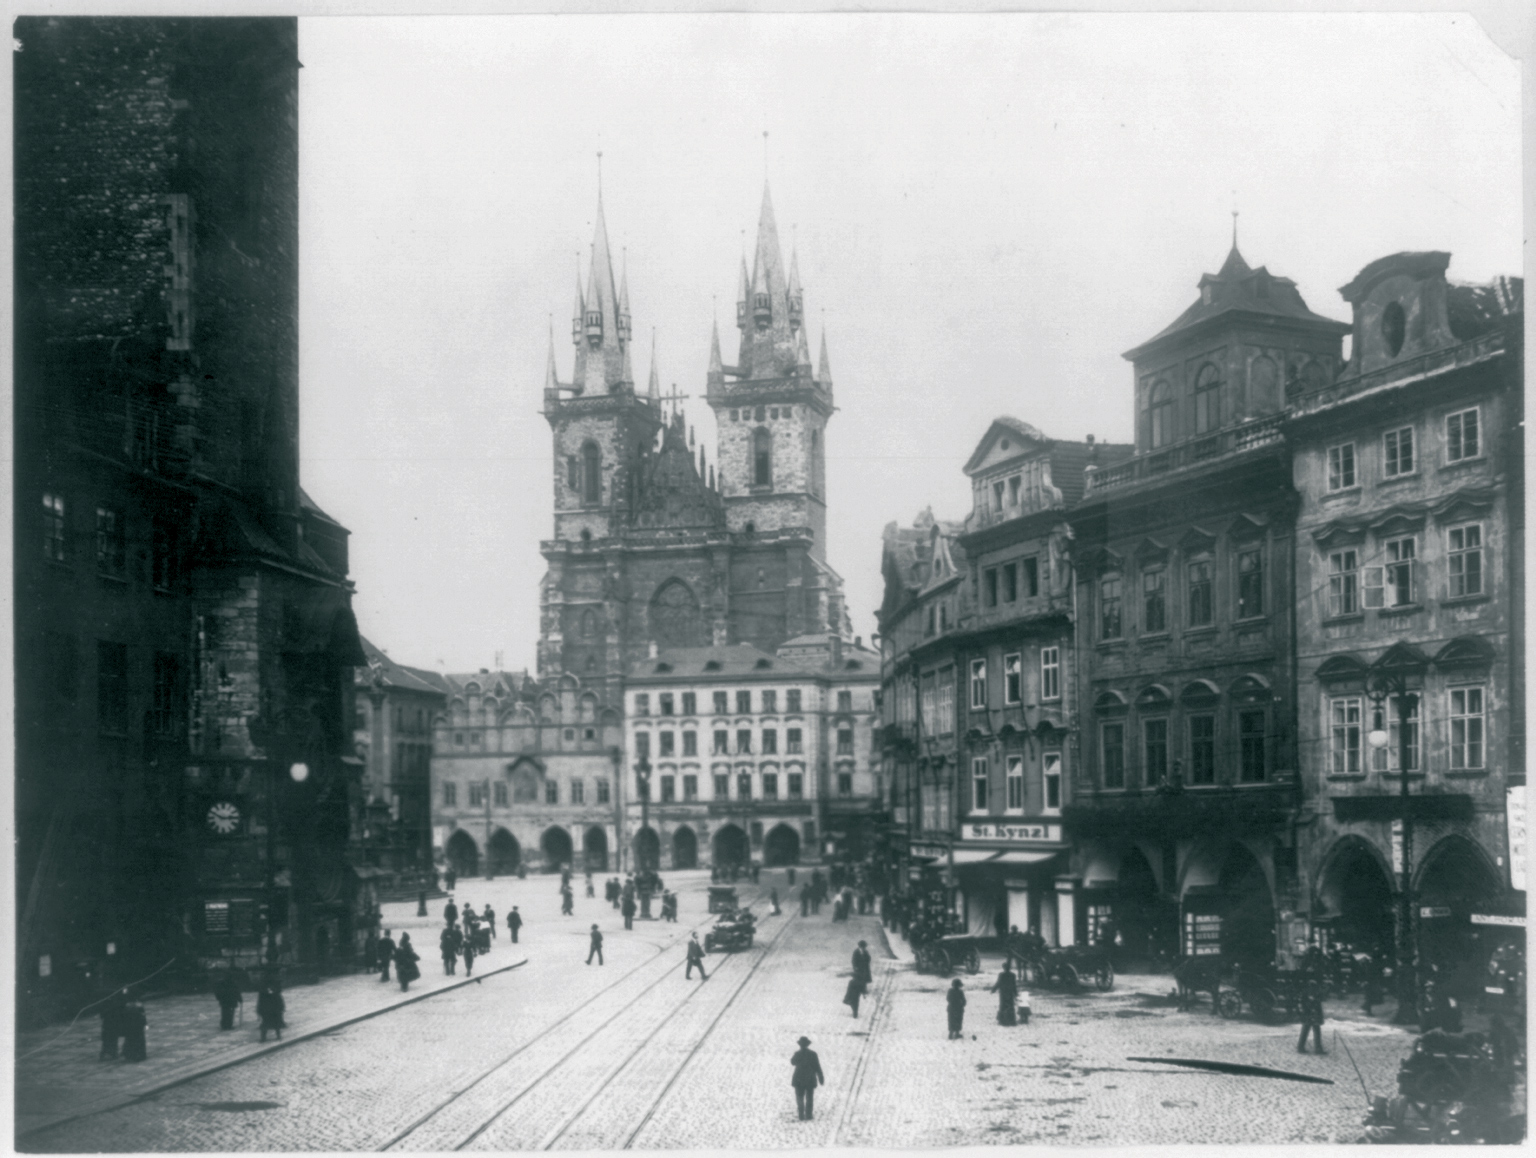 The Old City of Prague is one of Europe's most popular tourist sites – and one of the most charming. In the 19th century, when it was built, its somewhat kitschy look was in vogue. View from the Old City toward the Charles Bridge, 1920